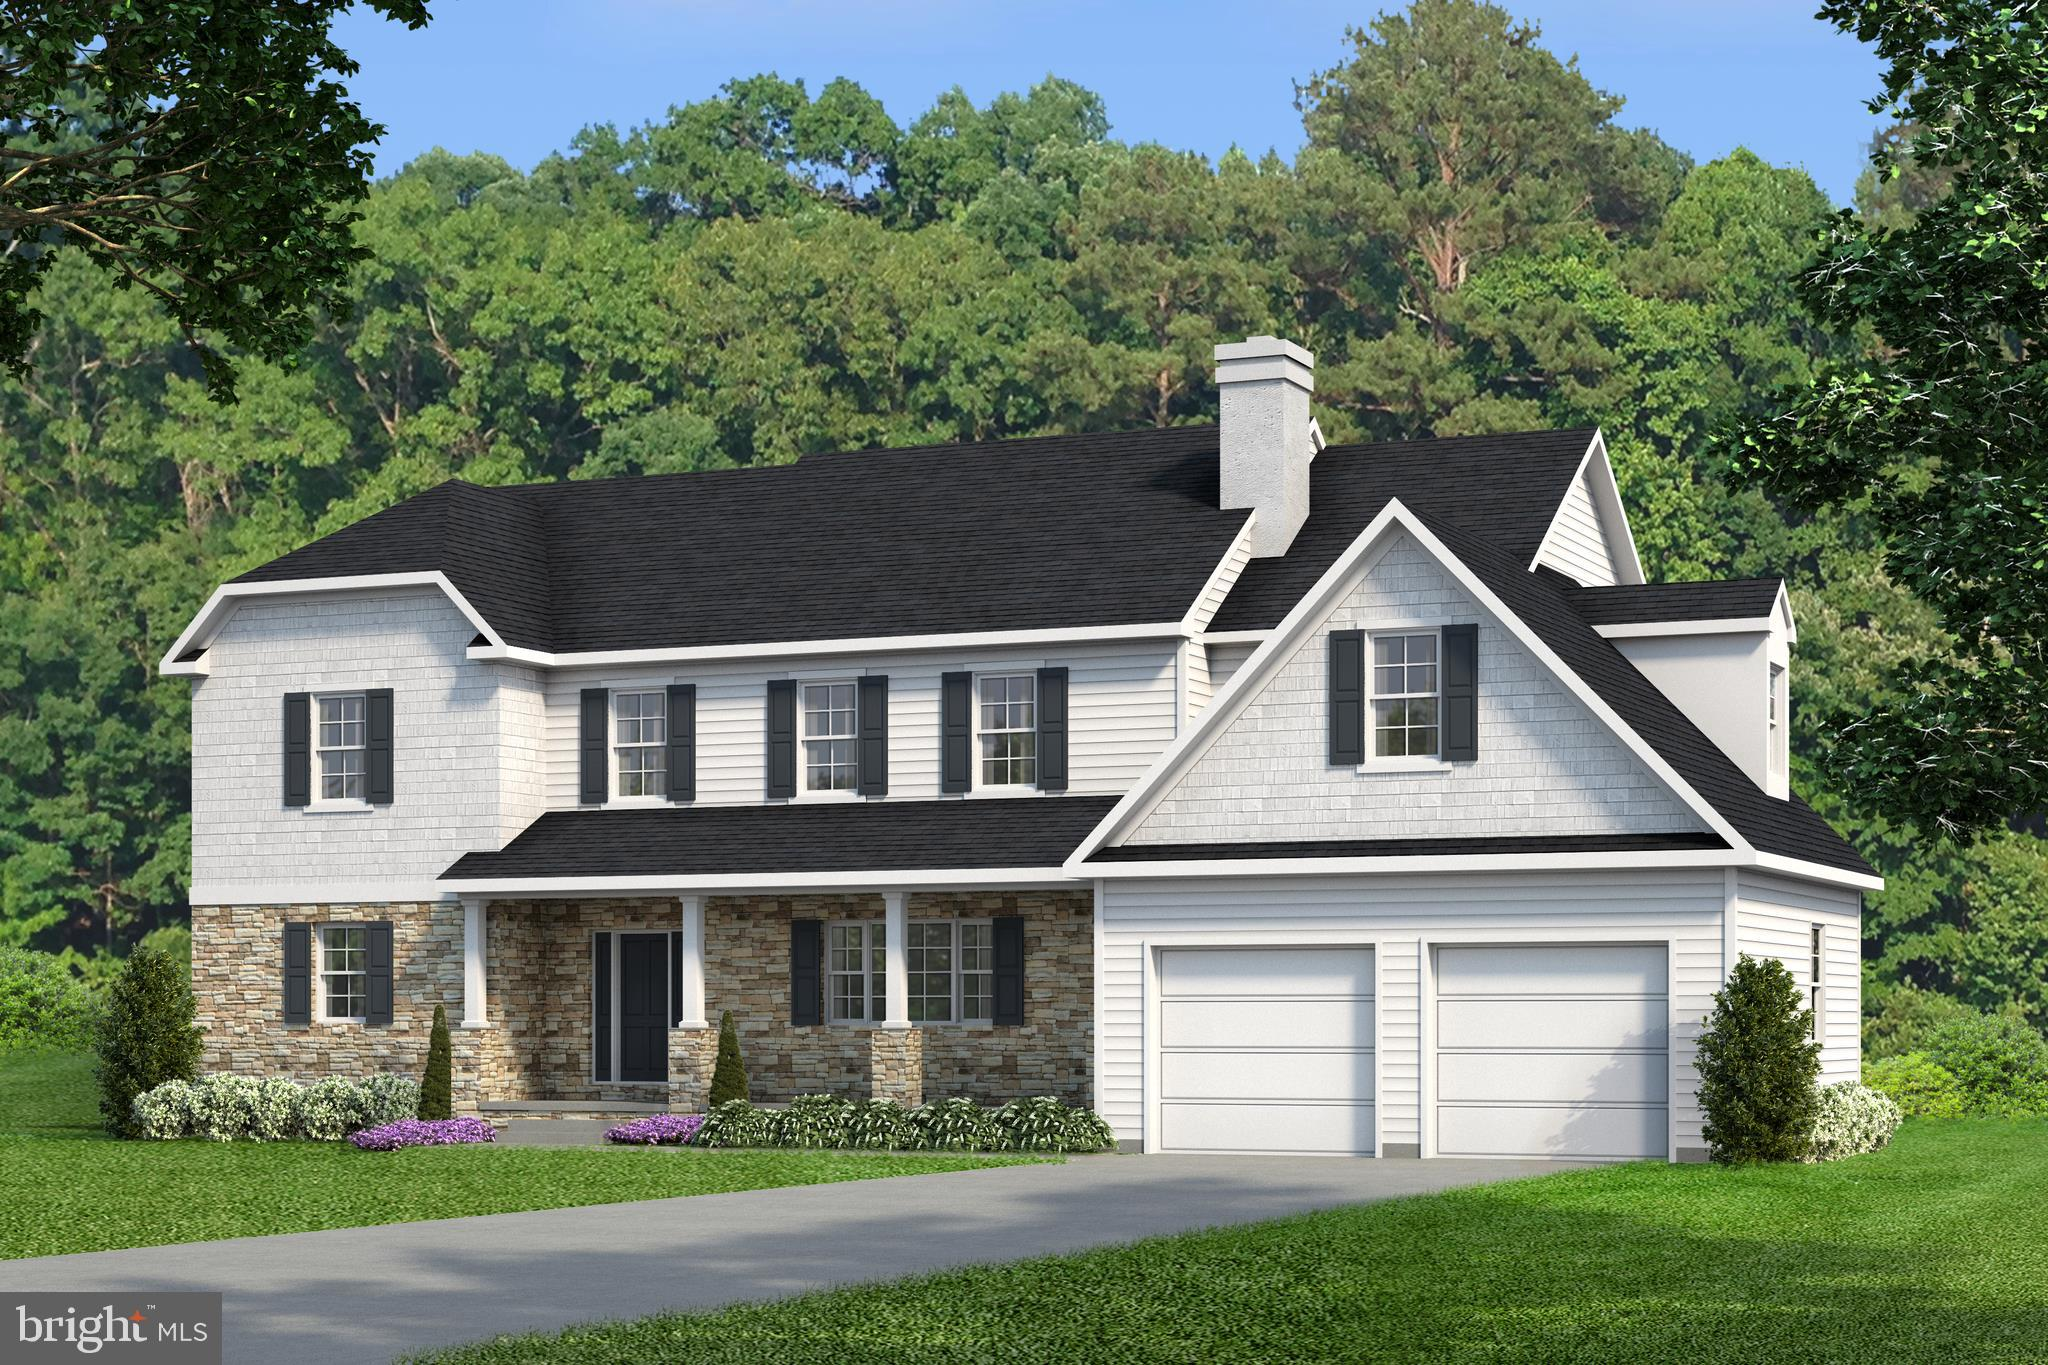 Lot 2 HALLOWELL ROAD, PLYMOUTH MEETING, PA 19462